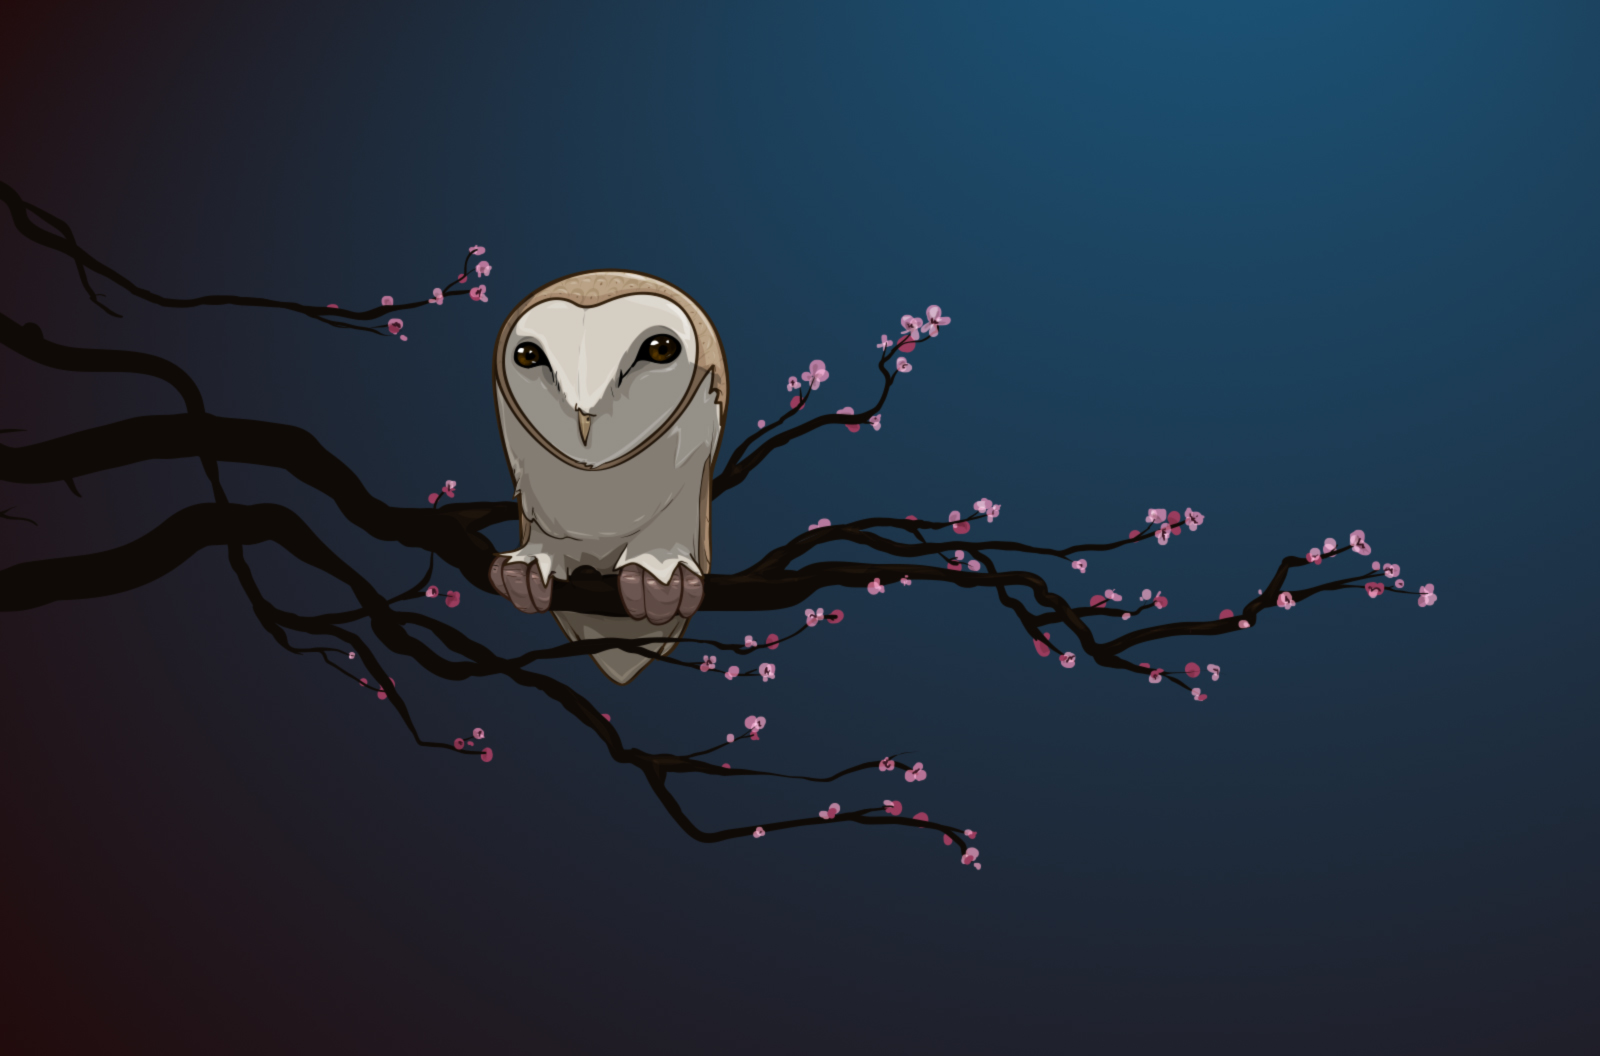 night owl 30 Illusive Illustrations from David Lanham